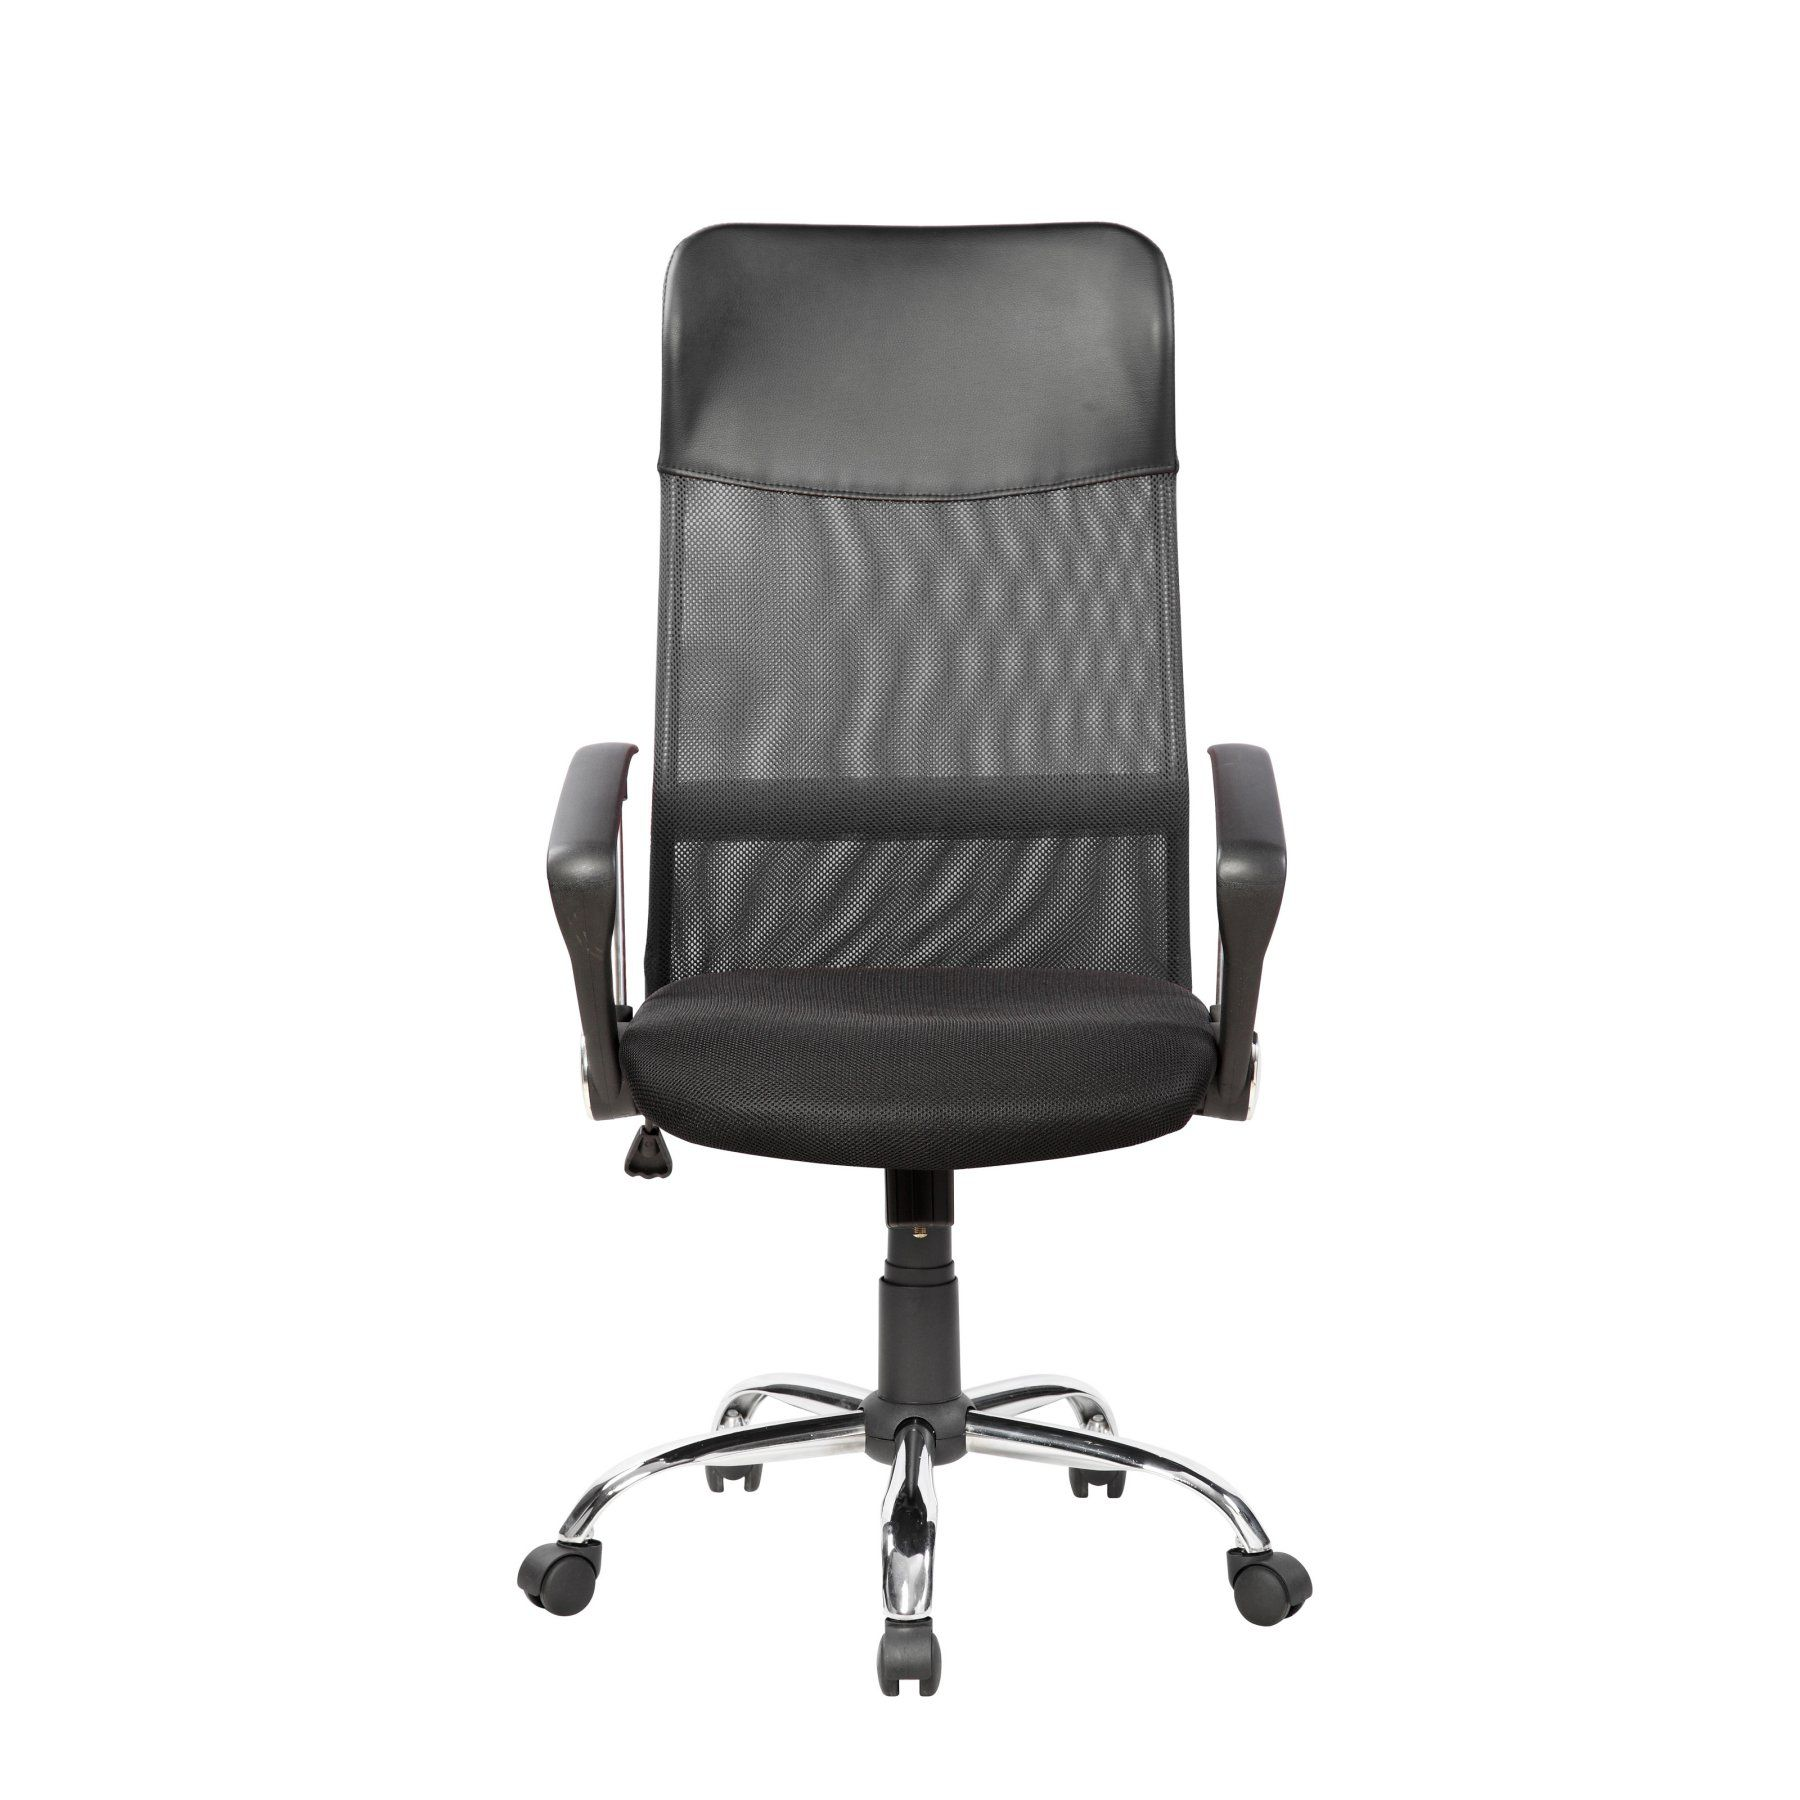 united chair highback executive office chair hn8074bk